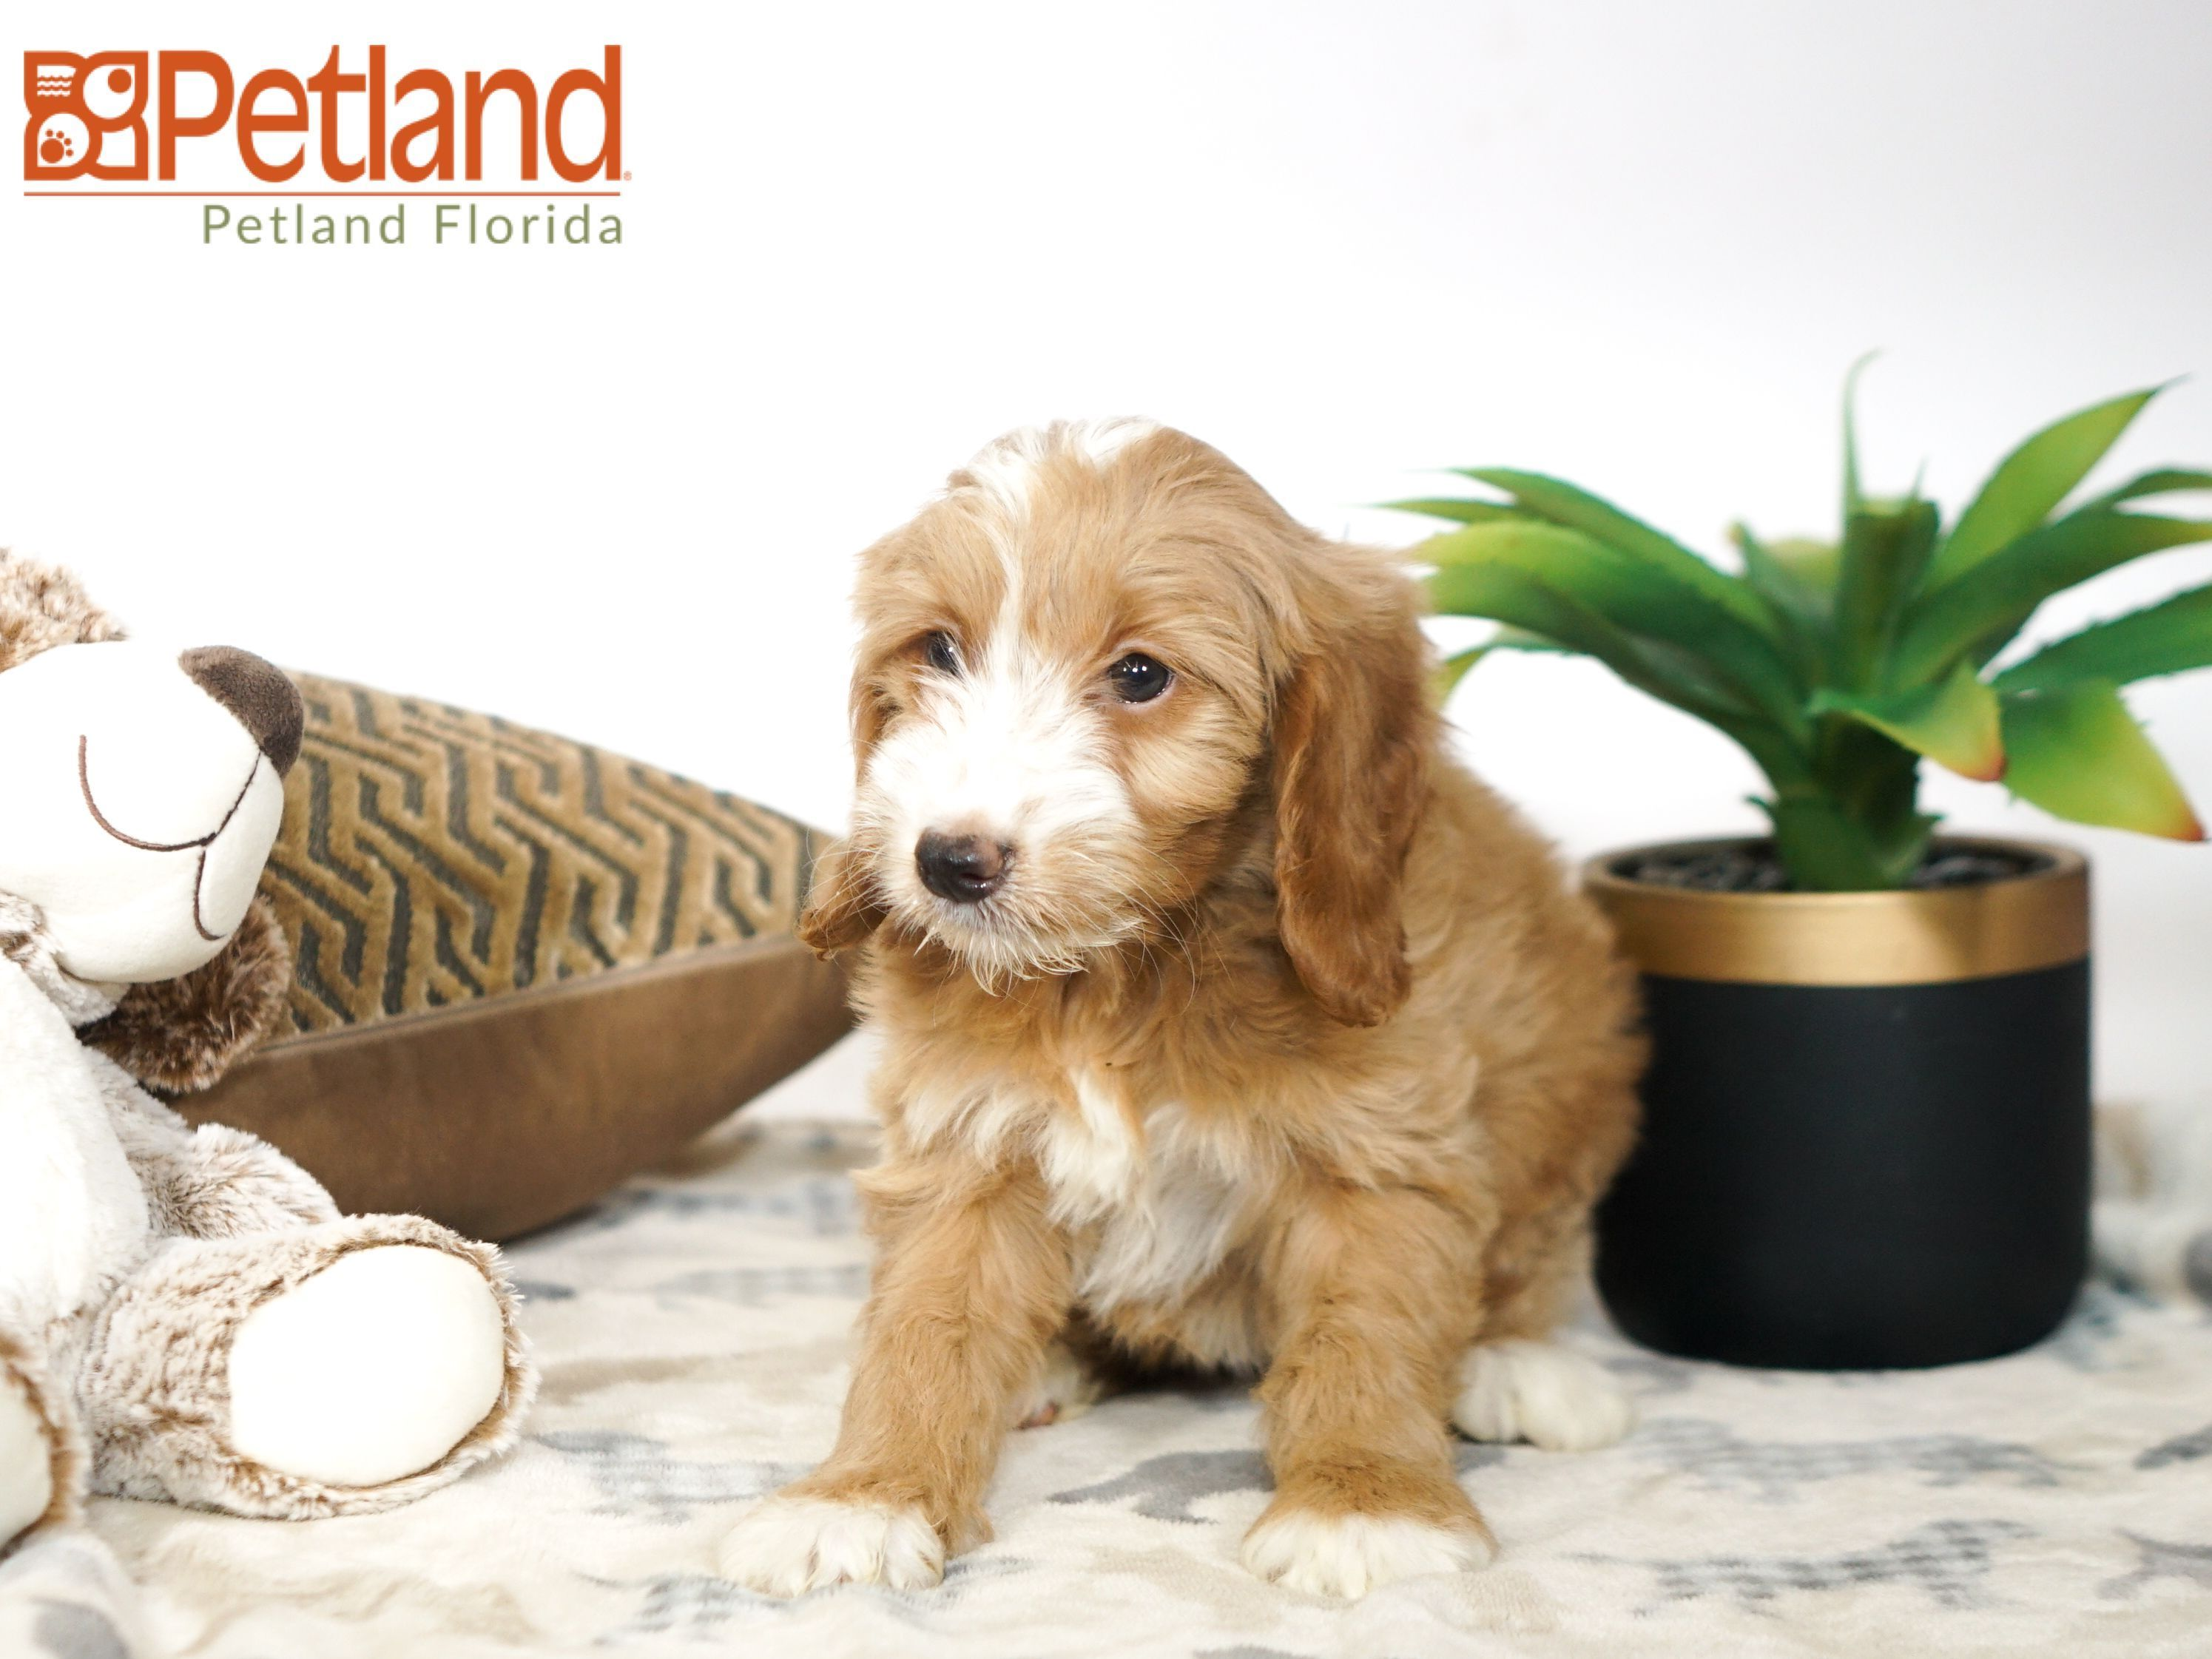 Puppies For Sale Puppy Friends Miniature Goldendoodle Puppies Goldendoodle Puppy For Sale